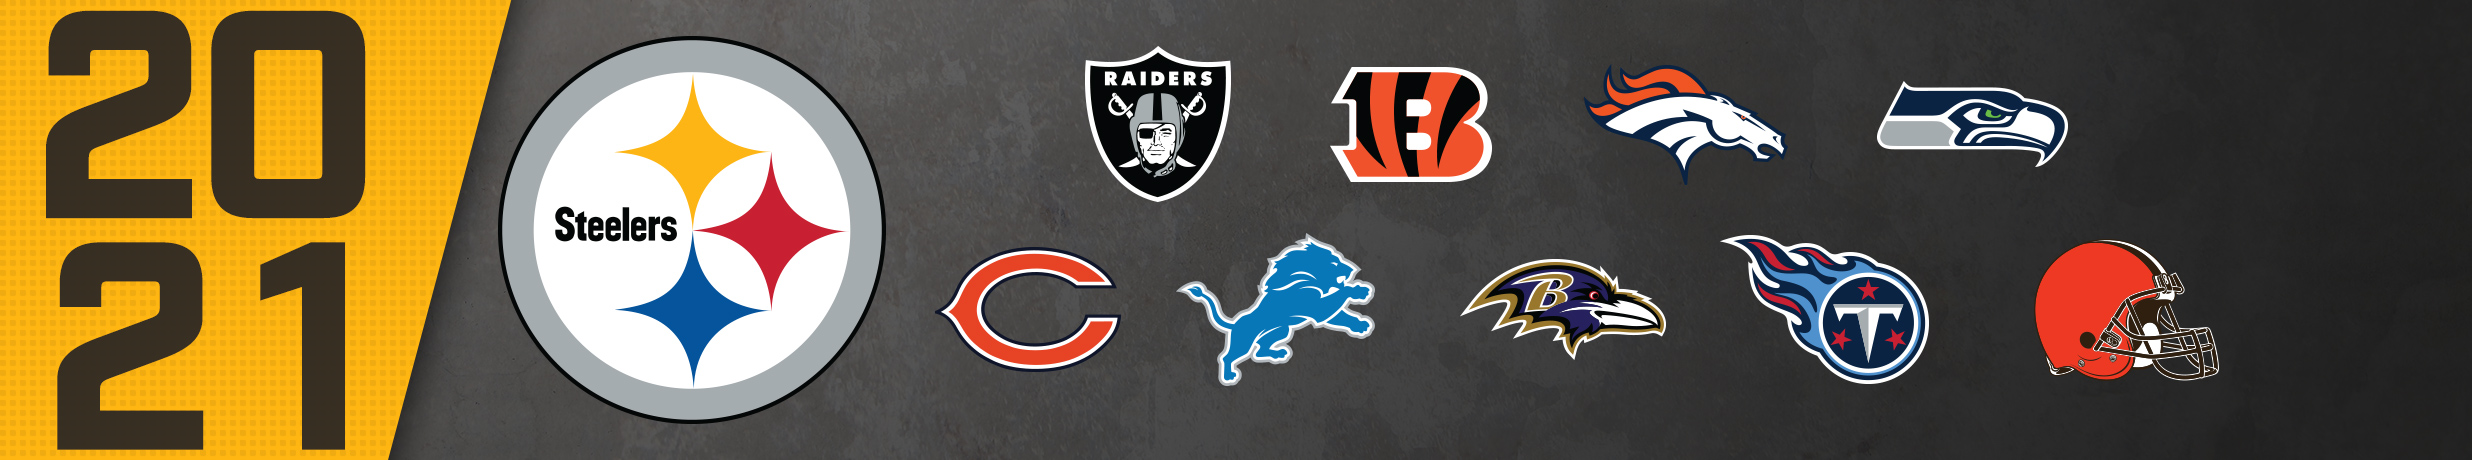 2021 Pittsburgh Steelers Opponents